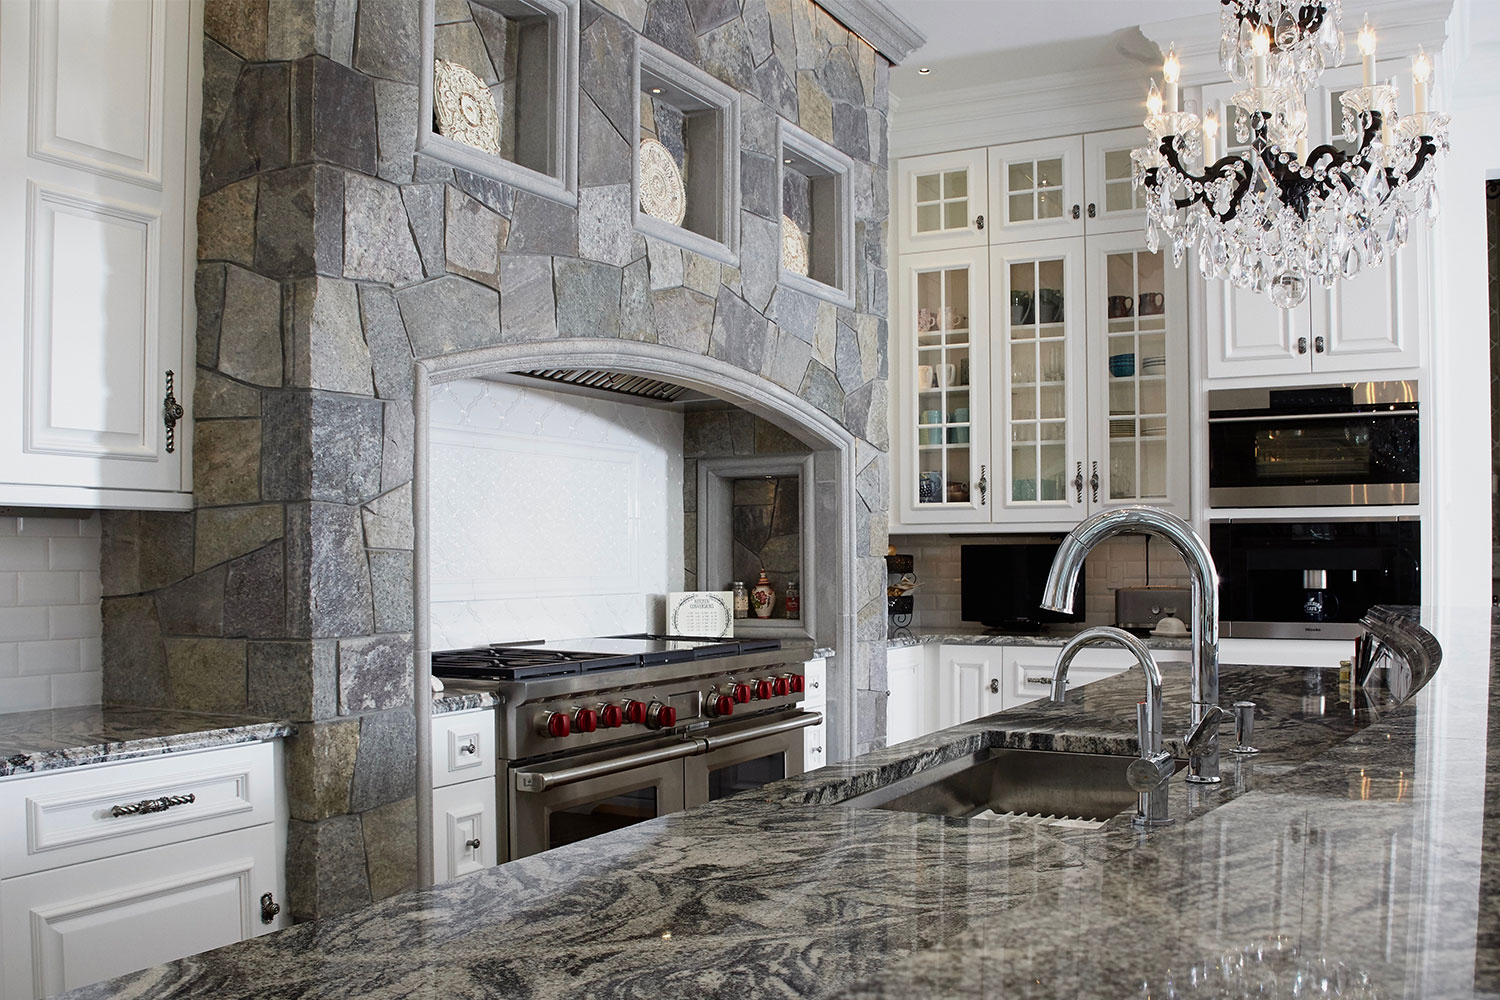 Kitchen with Range Stonework Stone Surround